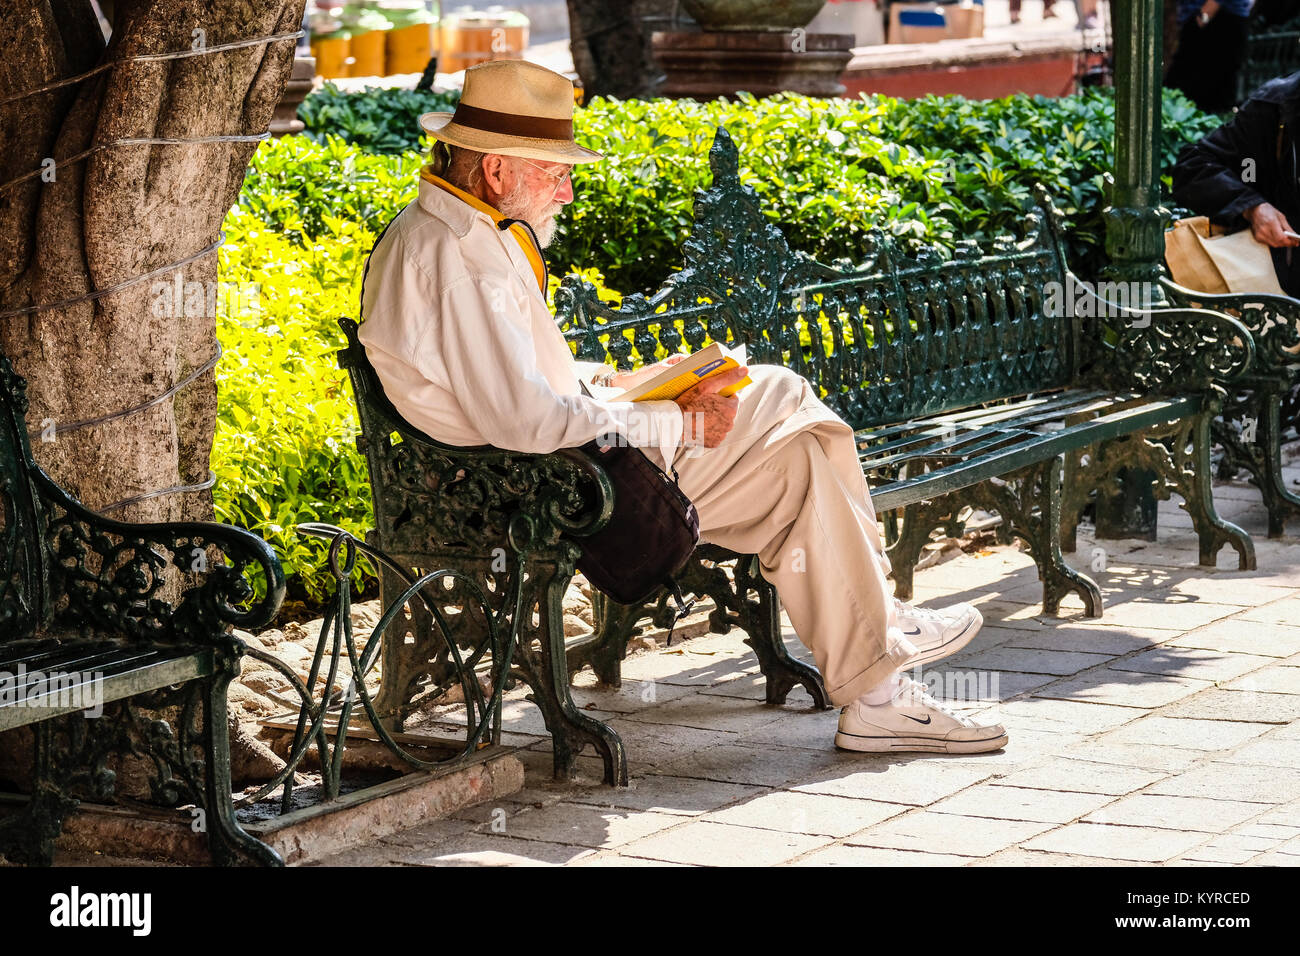 An old gentleman is reading a book on a park bench at El Jardin in San Miguel de Allende,Mexico - Stock Image